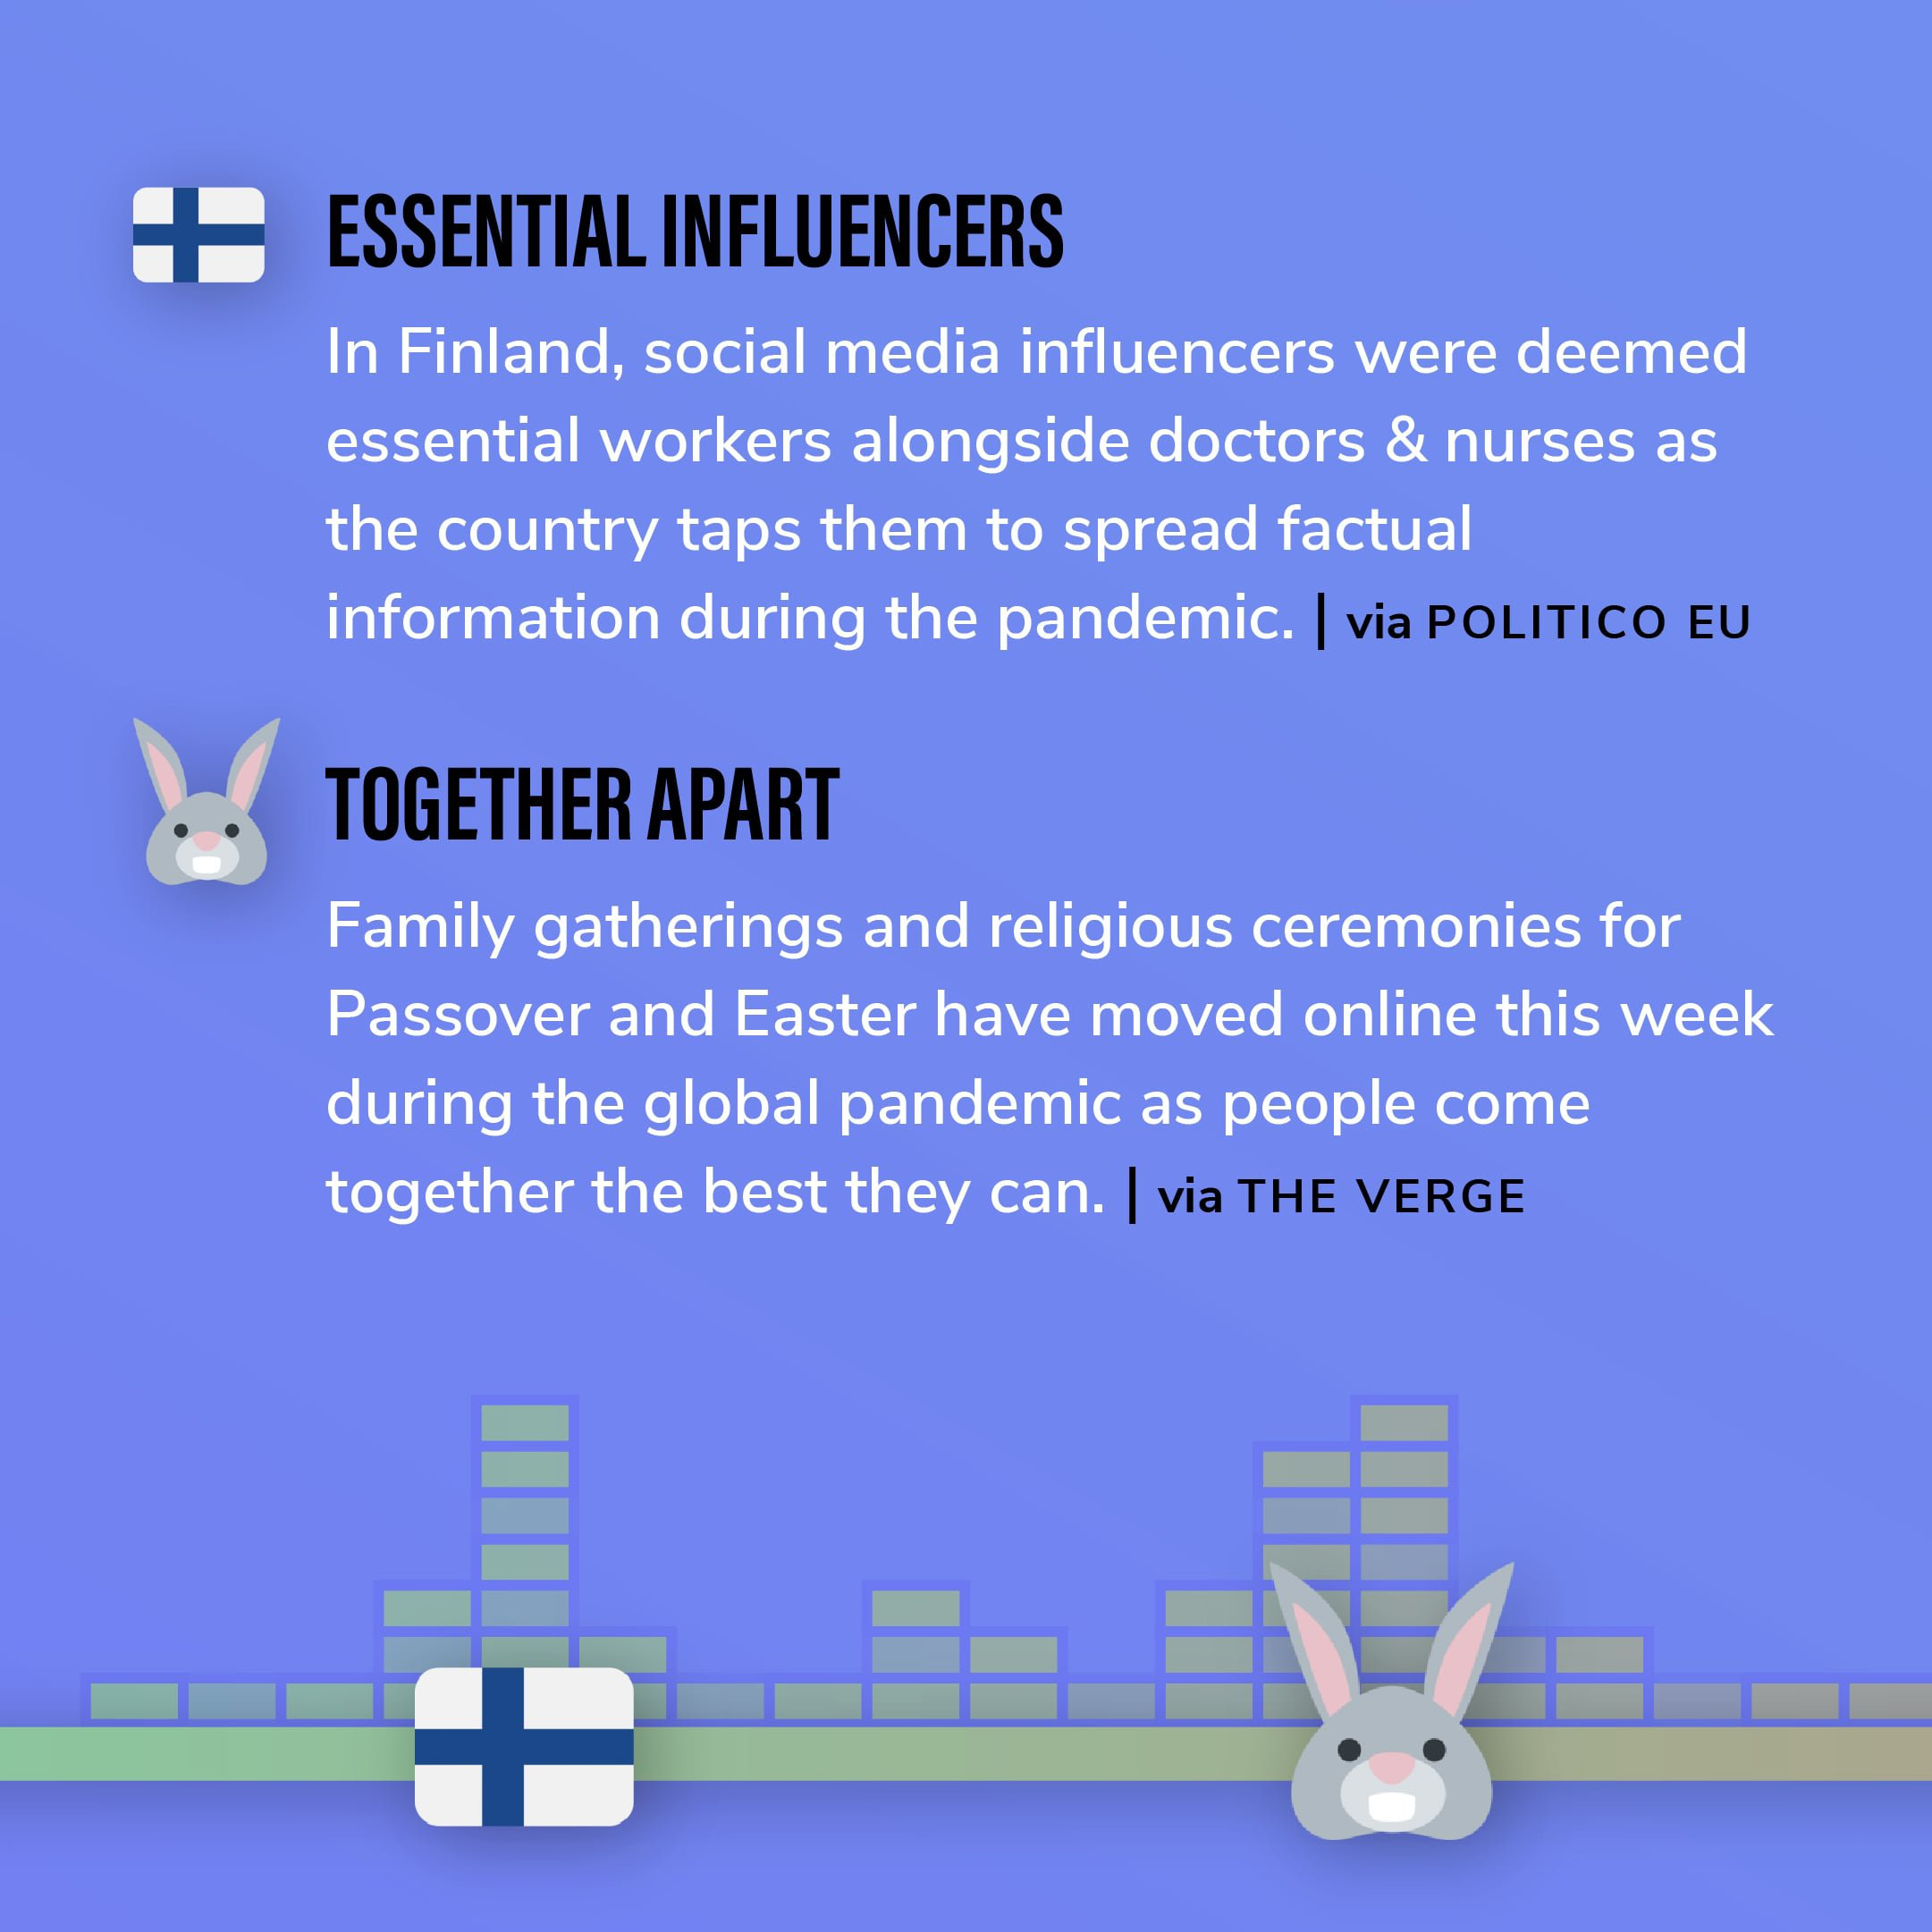 Story 5: In Finland, social media influencers were deemed essential workers alongside doctors & nurses as the country taps them to spread factual information during the pandemic.  Story 6: Family gatherings and religious ceremonies for Passover and Easter have moved online this week during the global pandemic as people come together the best they can.